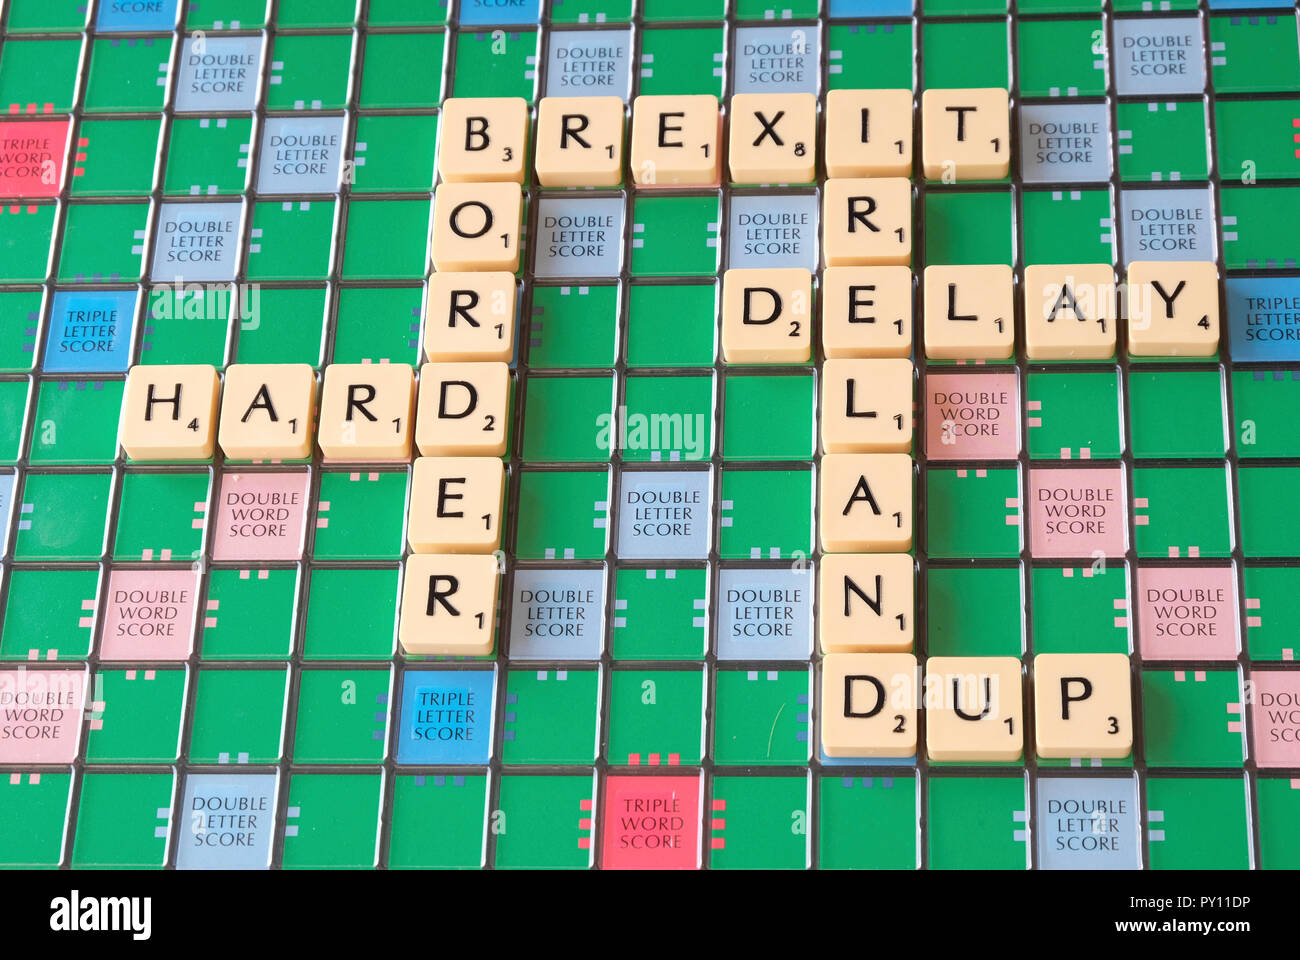 Scrabble board showing Brexit themed words about the Irish border problem - Stock Image